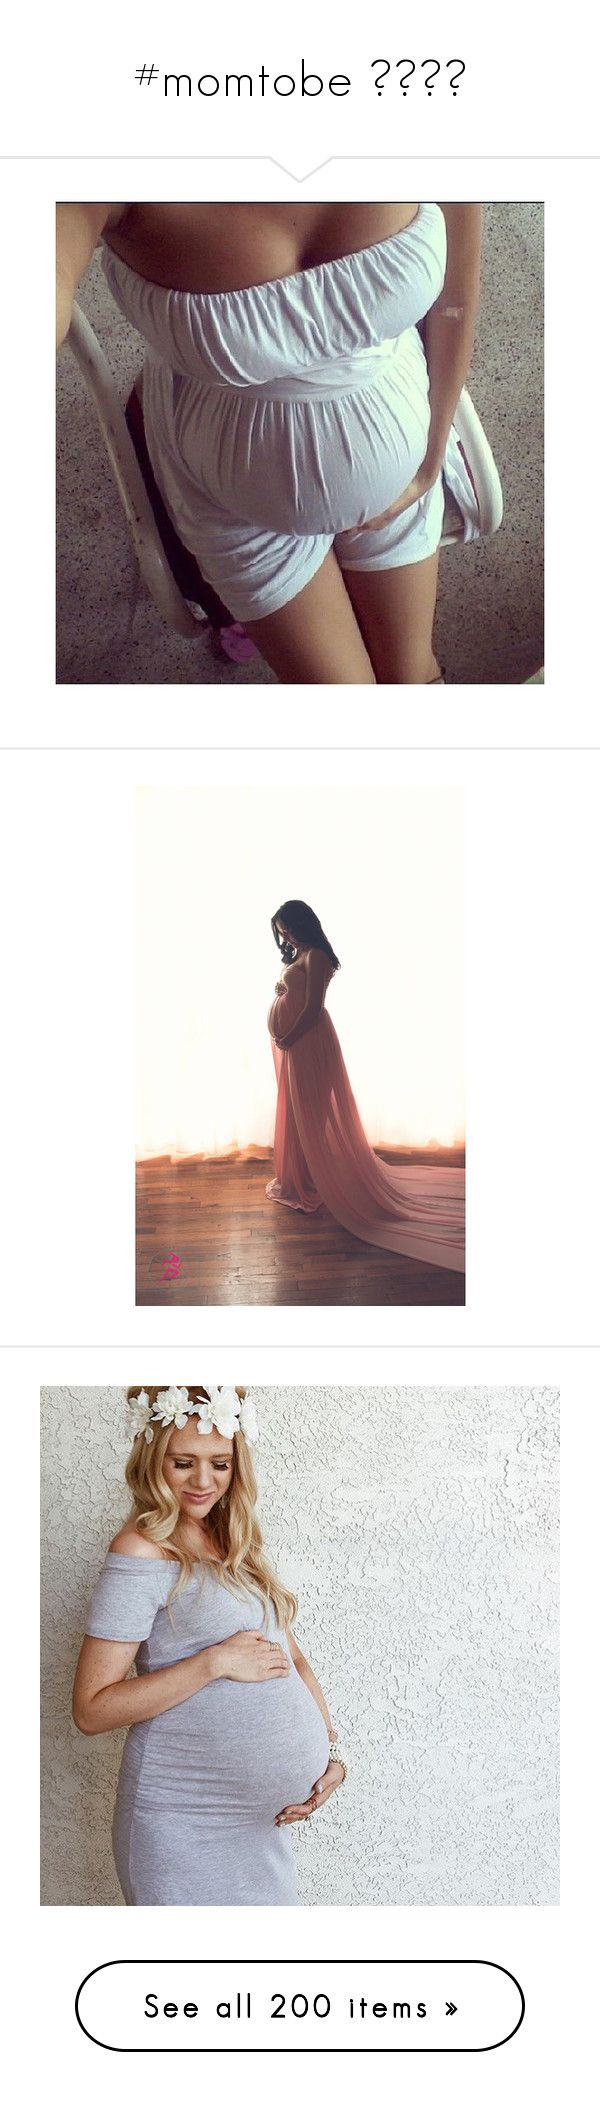 """""""#momtobe 👸🏽🤴🏽"""" by ally-xcv ❤ liked on Polyvore featuring maternity, dresses, white, women's clothing, pregnant, silver, t-shirts, tops, pregnancy and babies"""